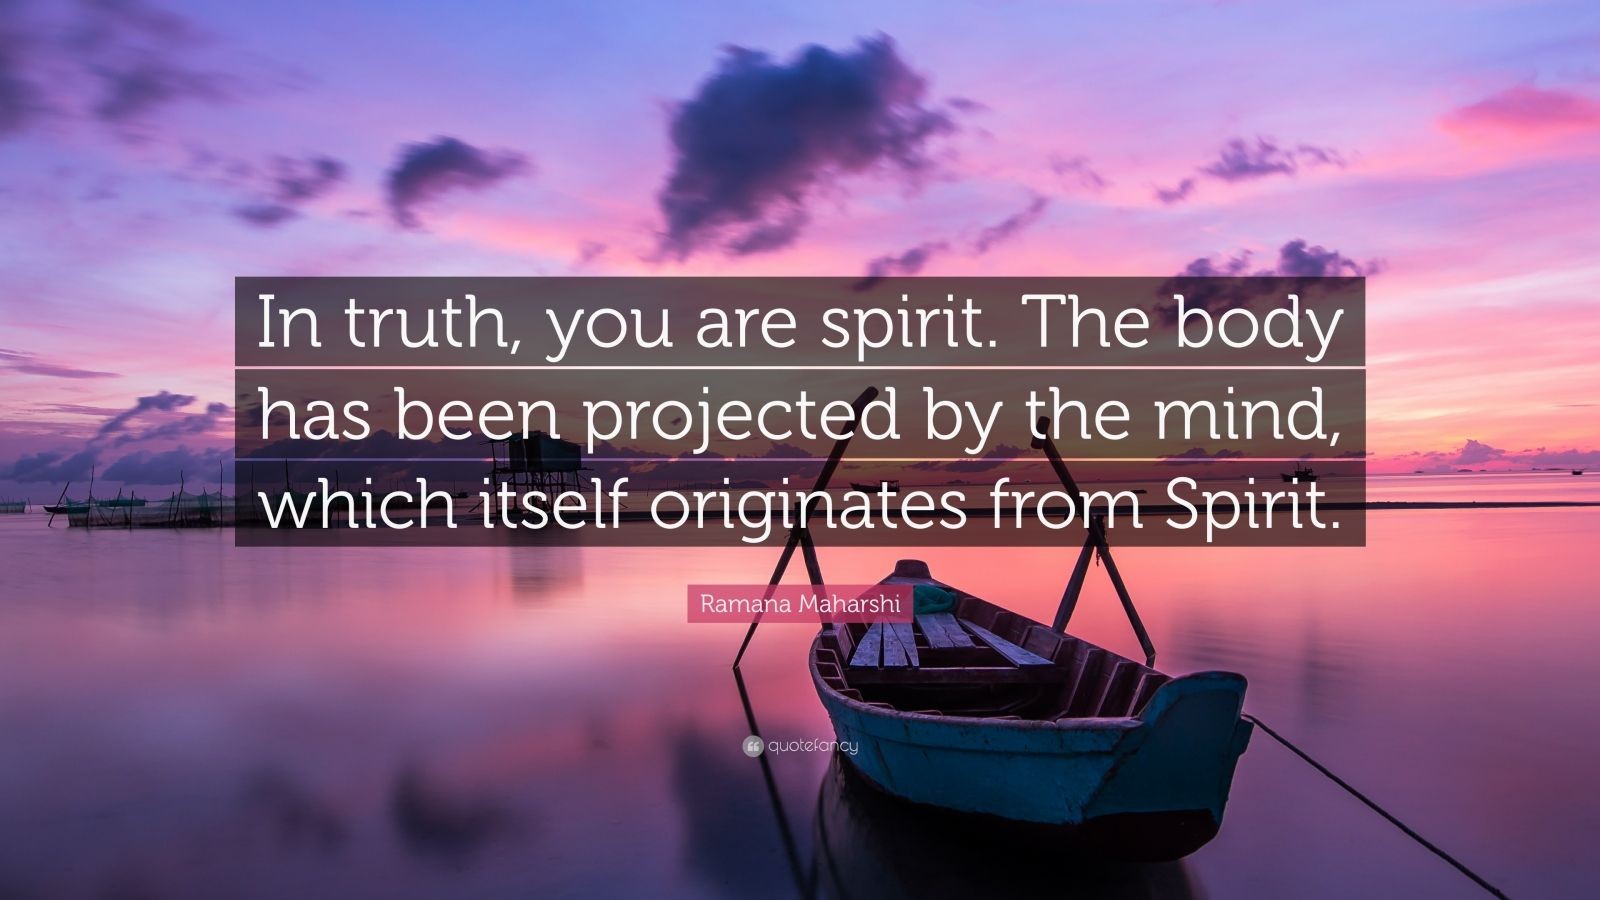 """Ramana Maharshi Quote: """"In truth, you are spirit. The body has been projected by the mind, which itself originates from Spirit."""""""